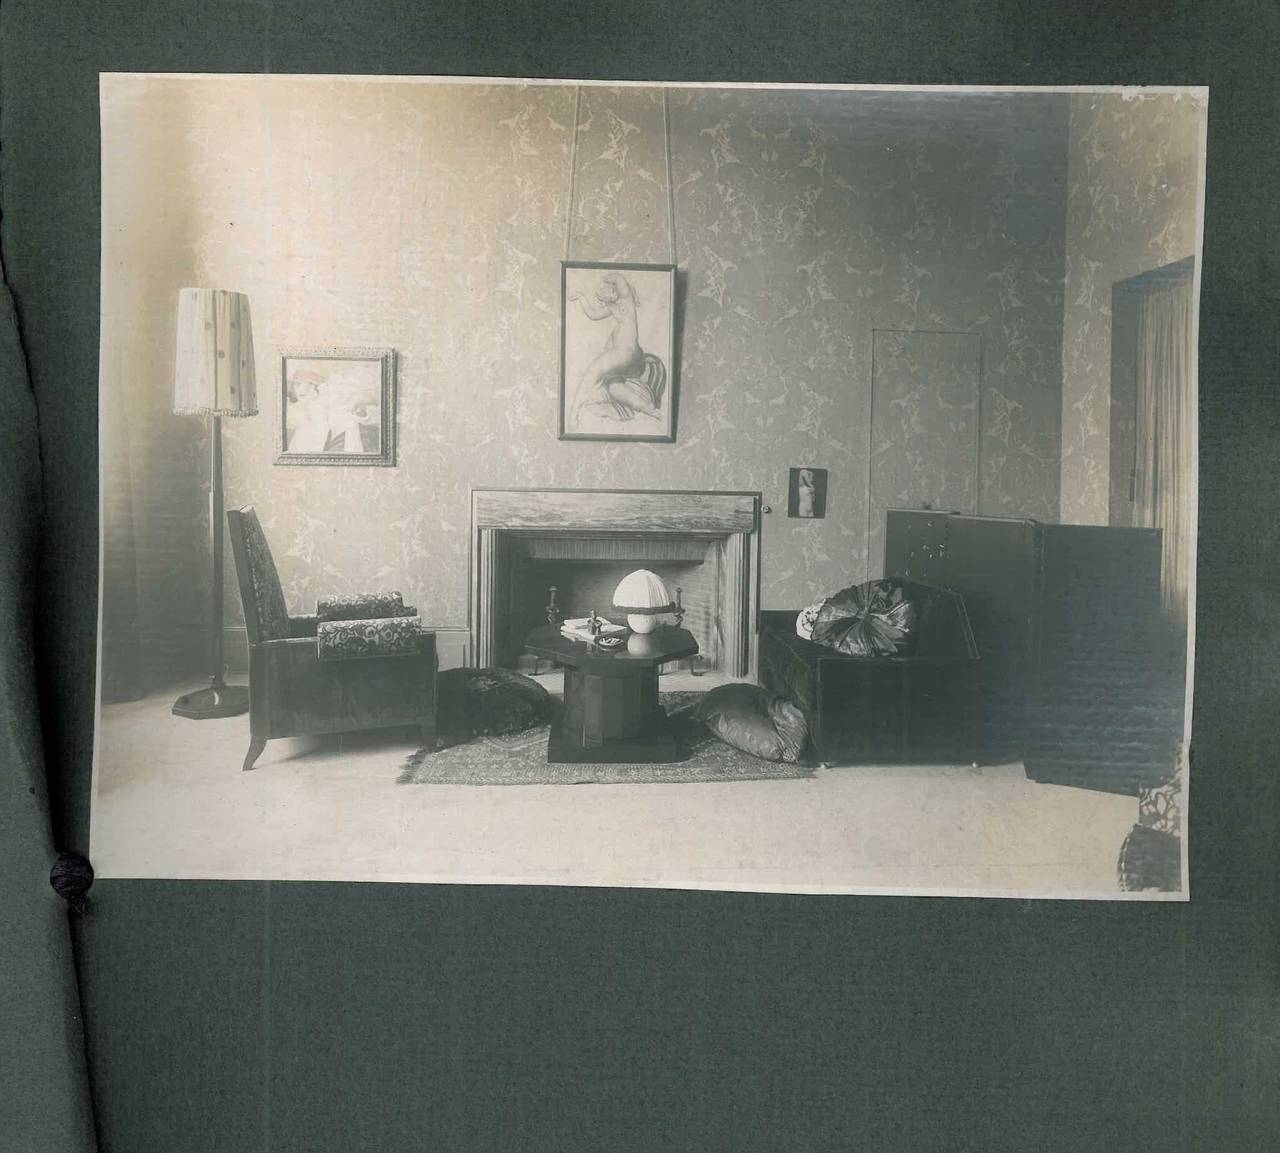 A unique photograph album in original grey card wrappers with the Ruhlmann name embossed on the front and the name of the client Monsieur Molinie also inscribed on the front cover. The album contains six large mounted original photographs, one per